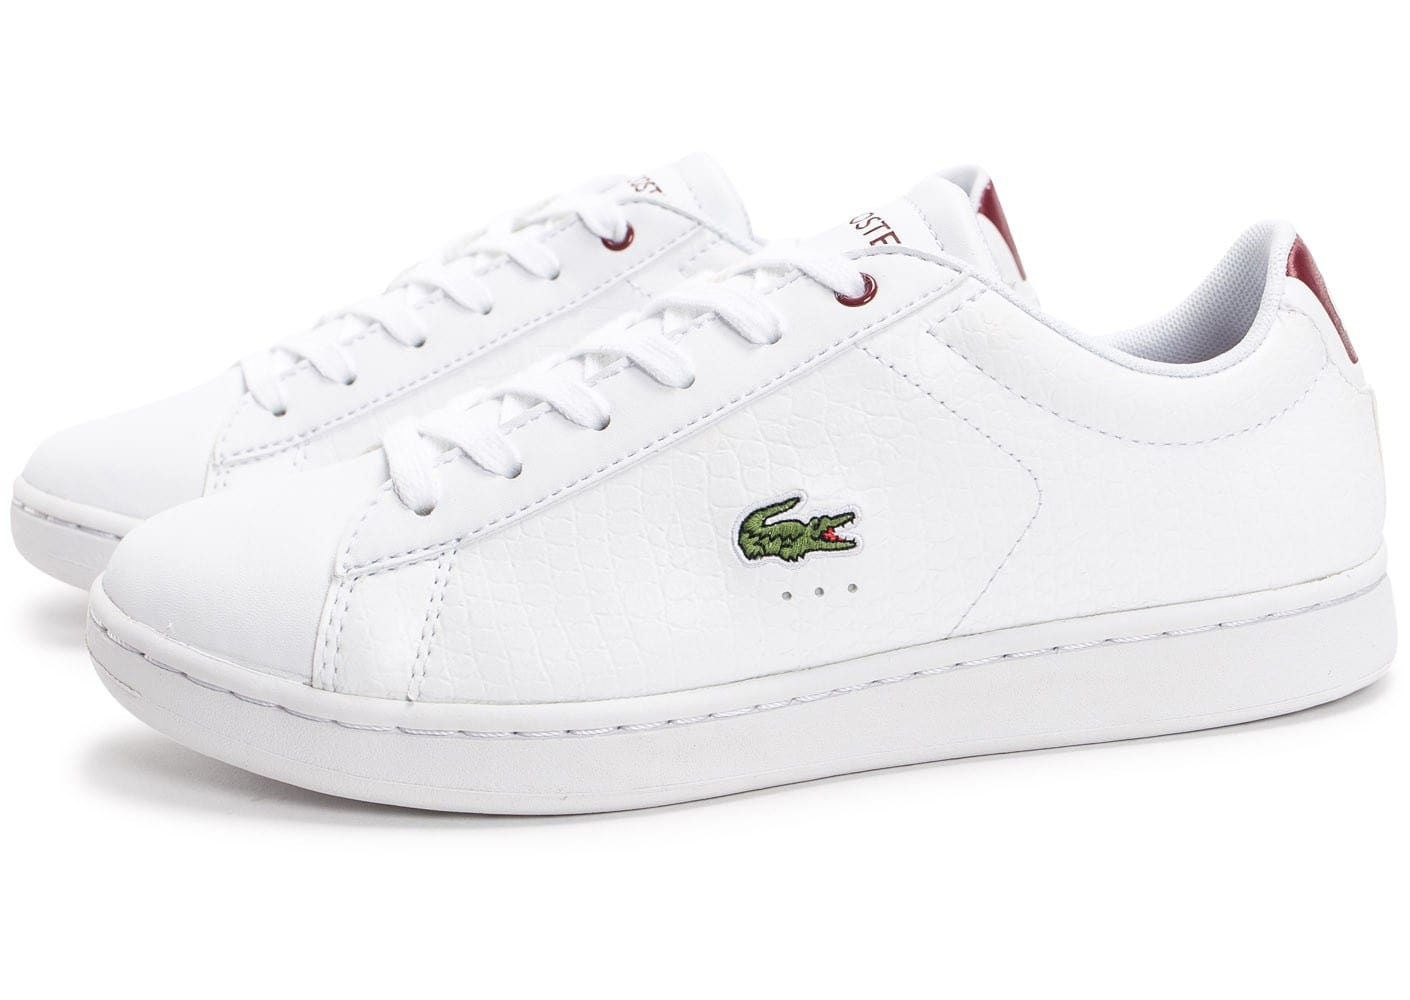 Lacoste Et Croc Femme Chaussures Evo Rouge Carnaby Blanche Baskets pMSzUV